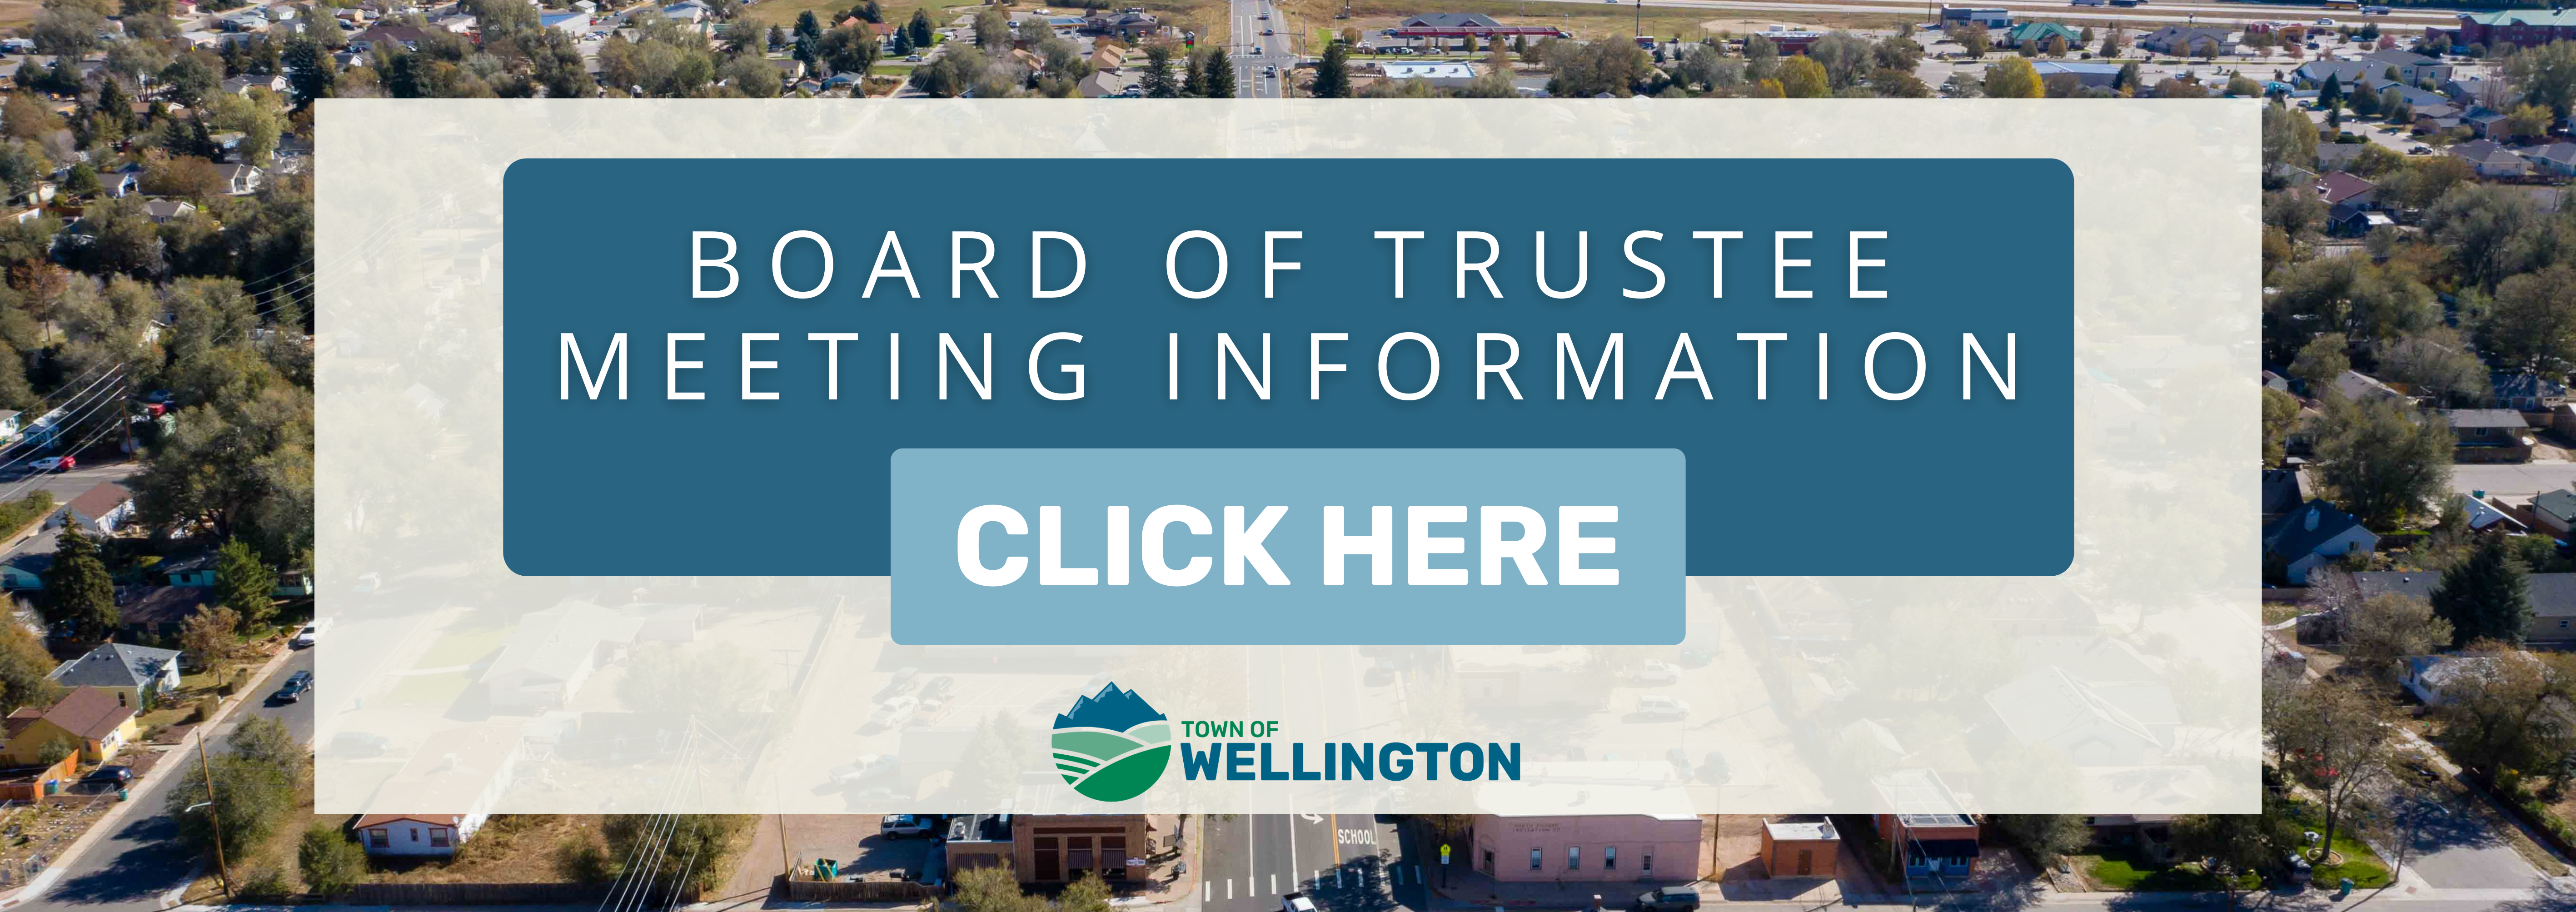 Click for Board of Trustee Meeting Info